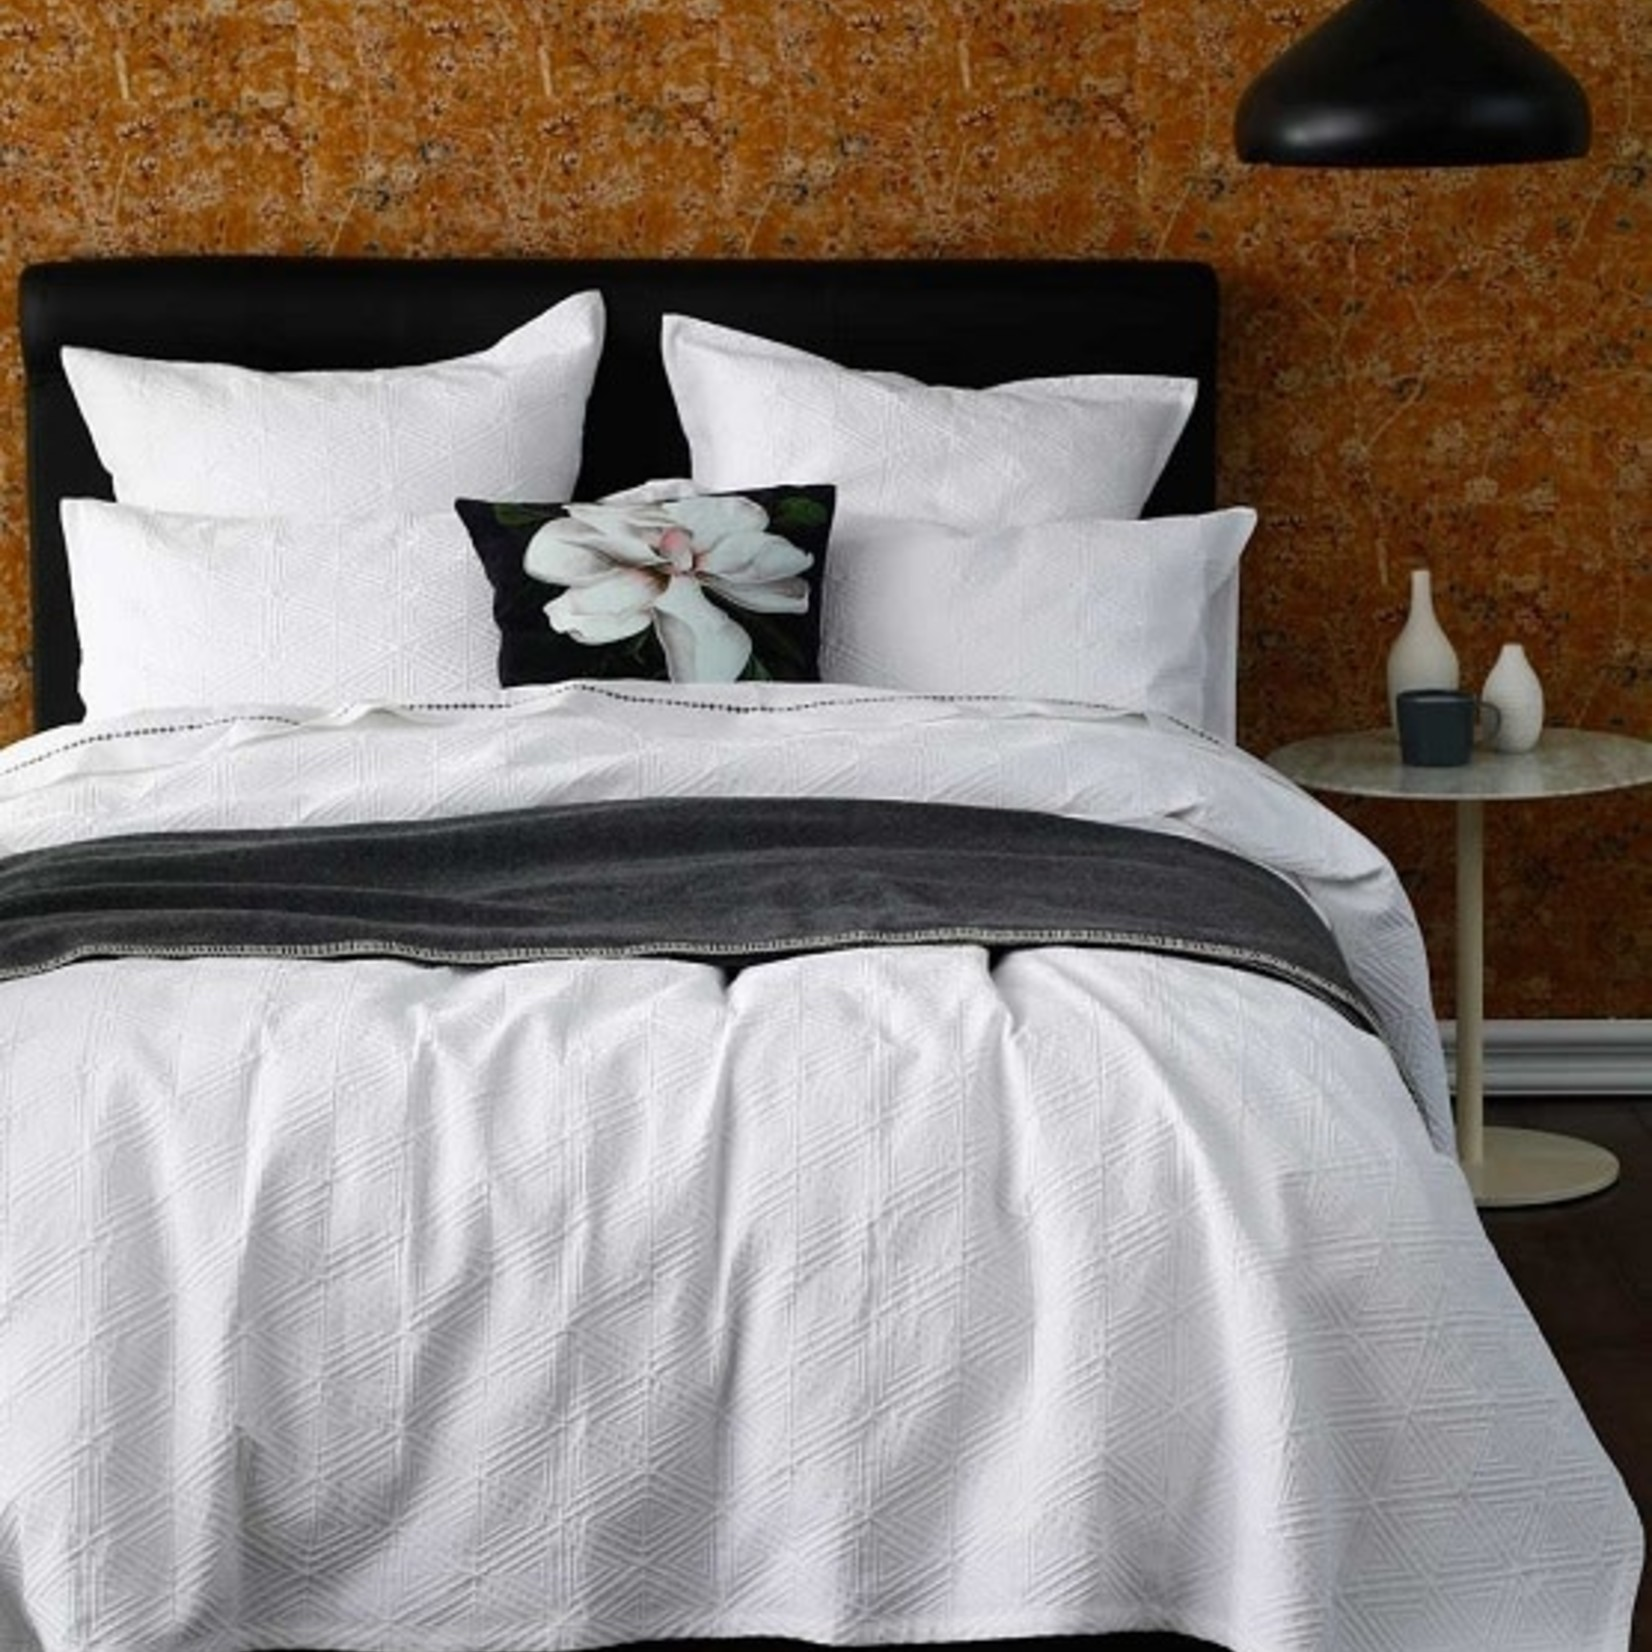 MM Linens TAIKA Bedcover Set